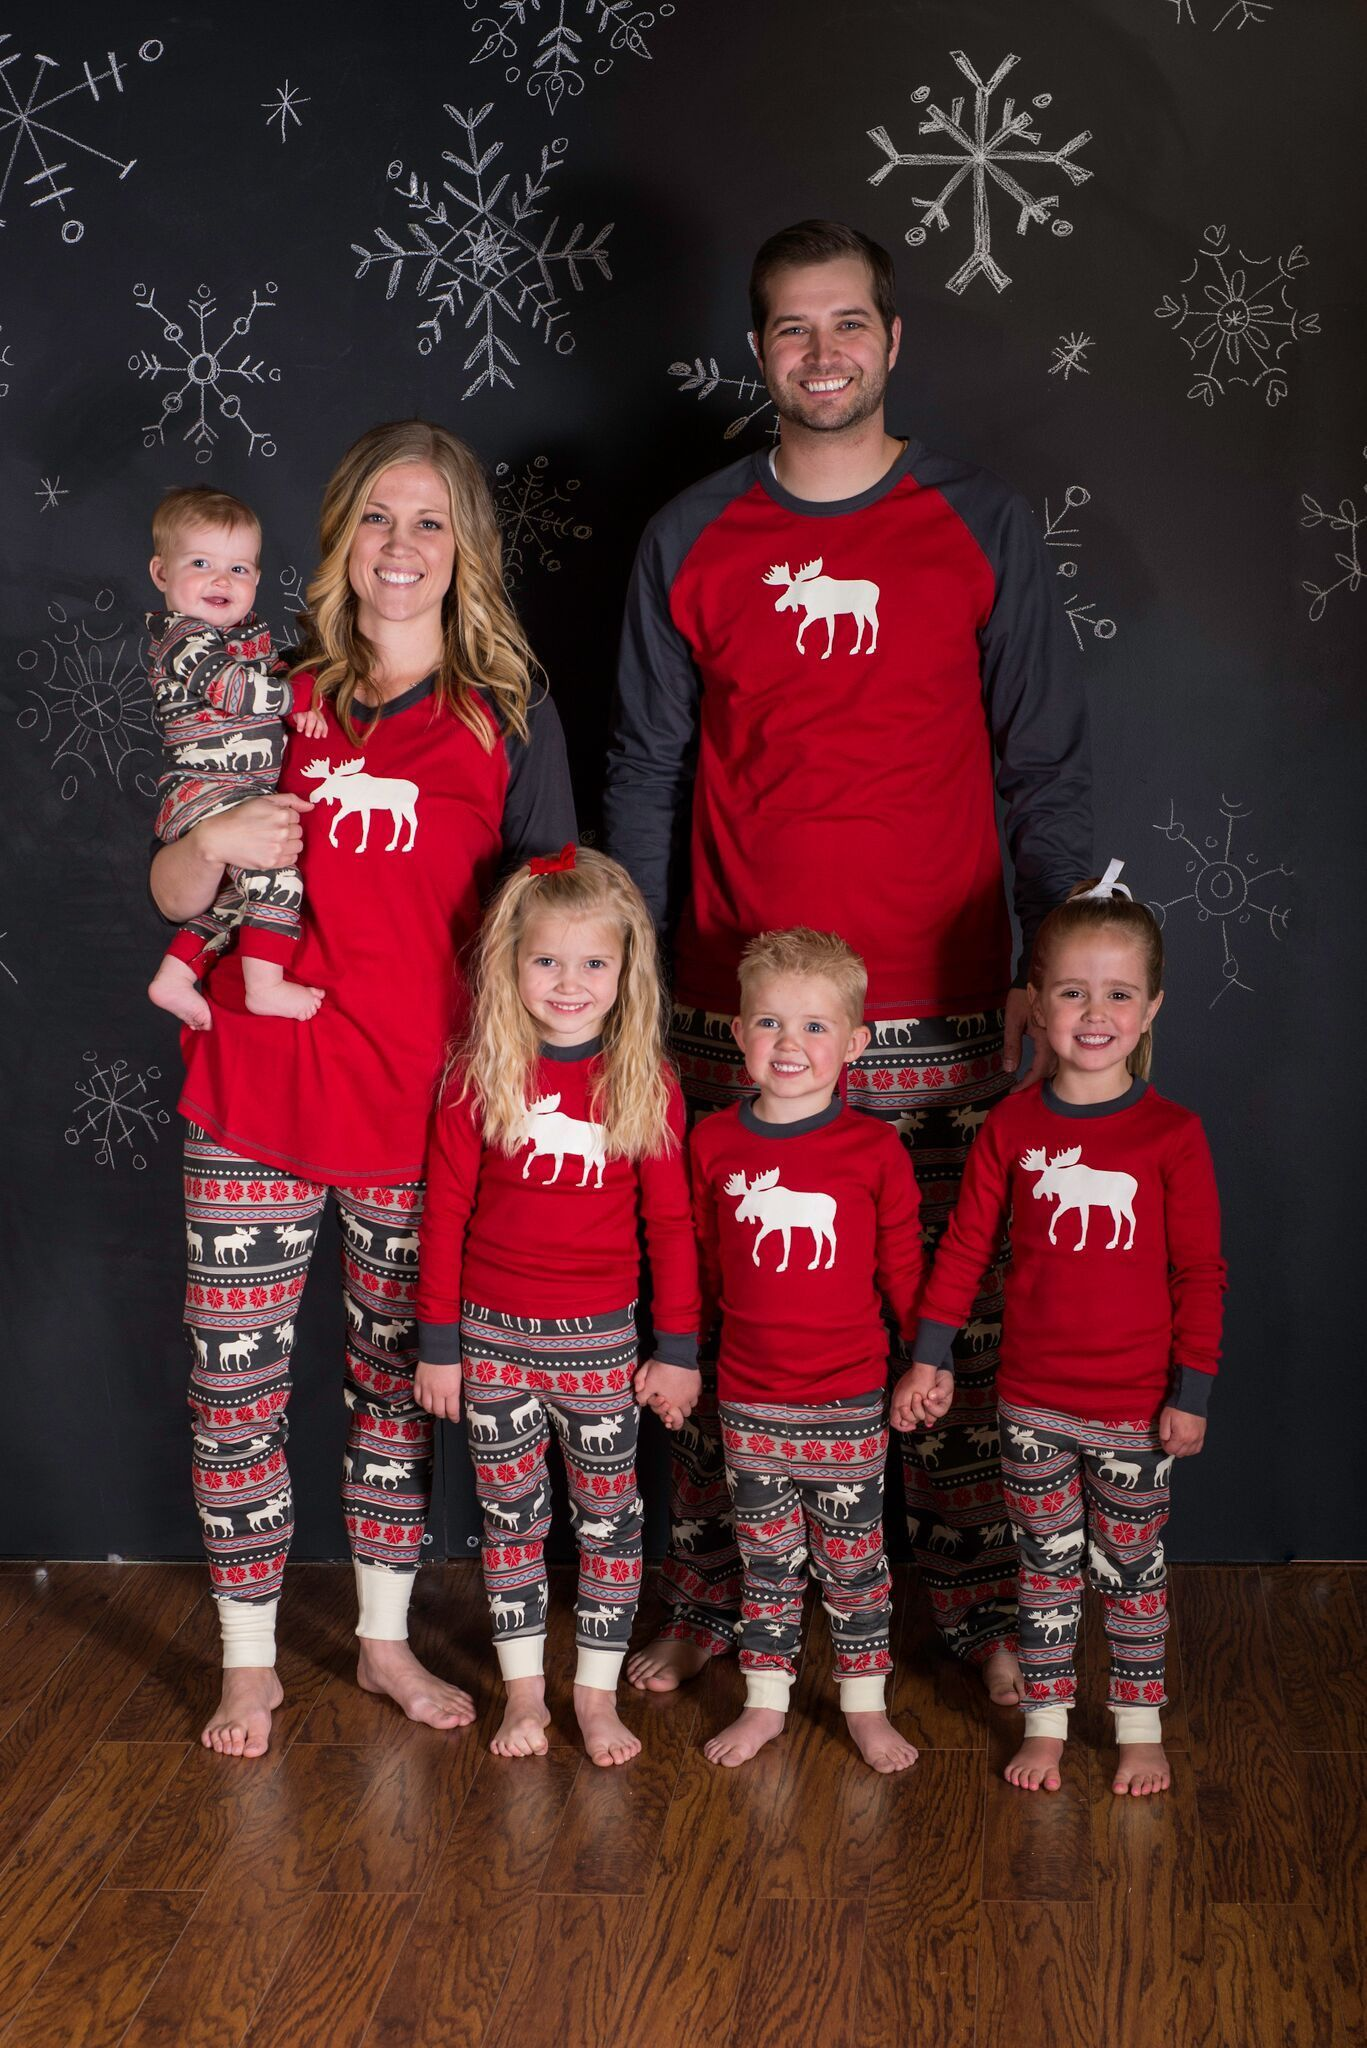 63c511d1921c Moose Fair PJ's for the whole Family! Moose Fair PJ's for the whole Family! Pajama  Outfits, Baby Outfits, Matching Christmas